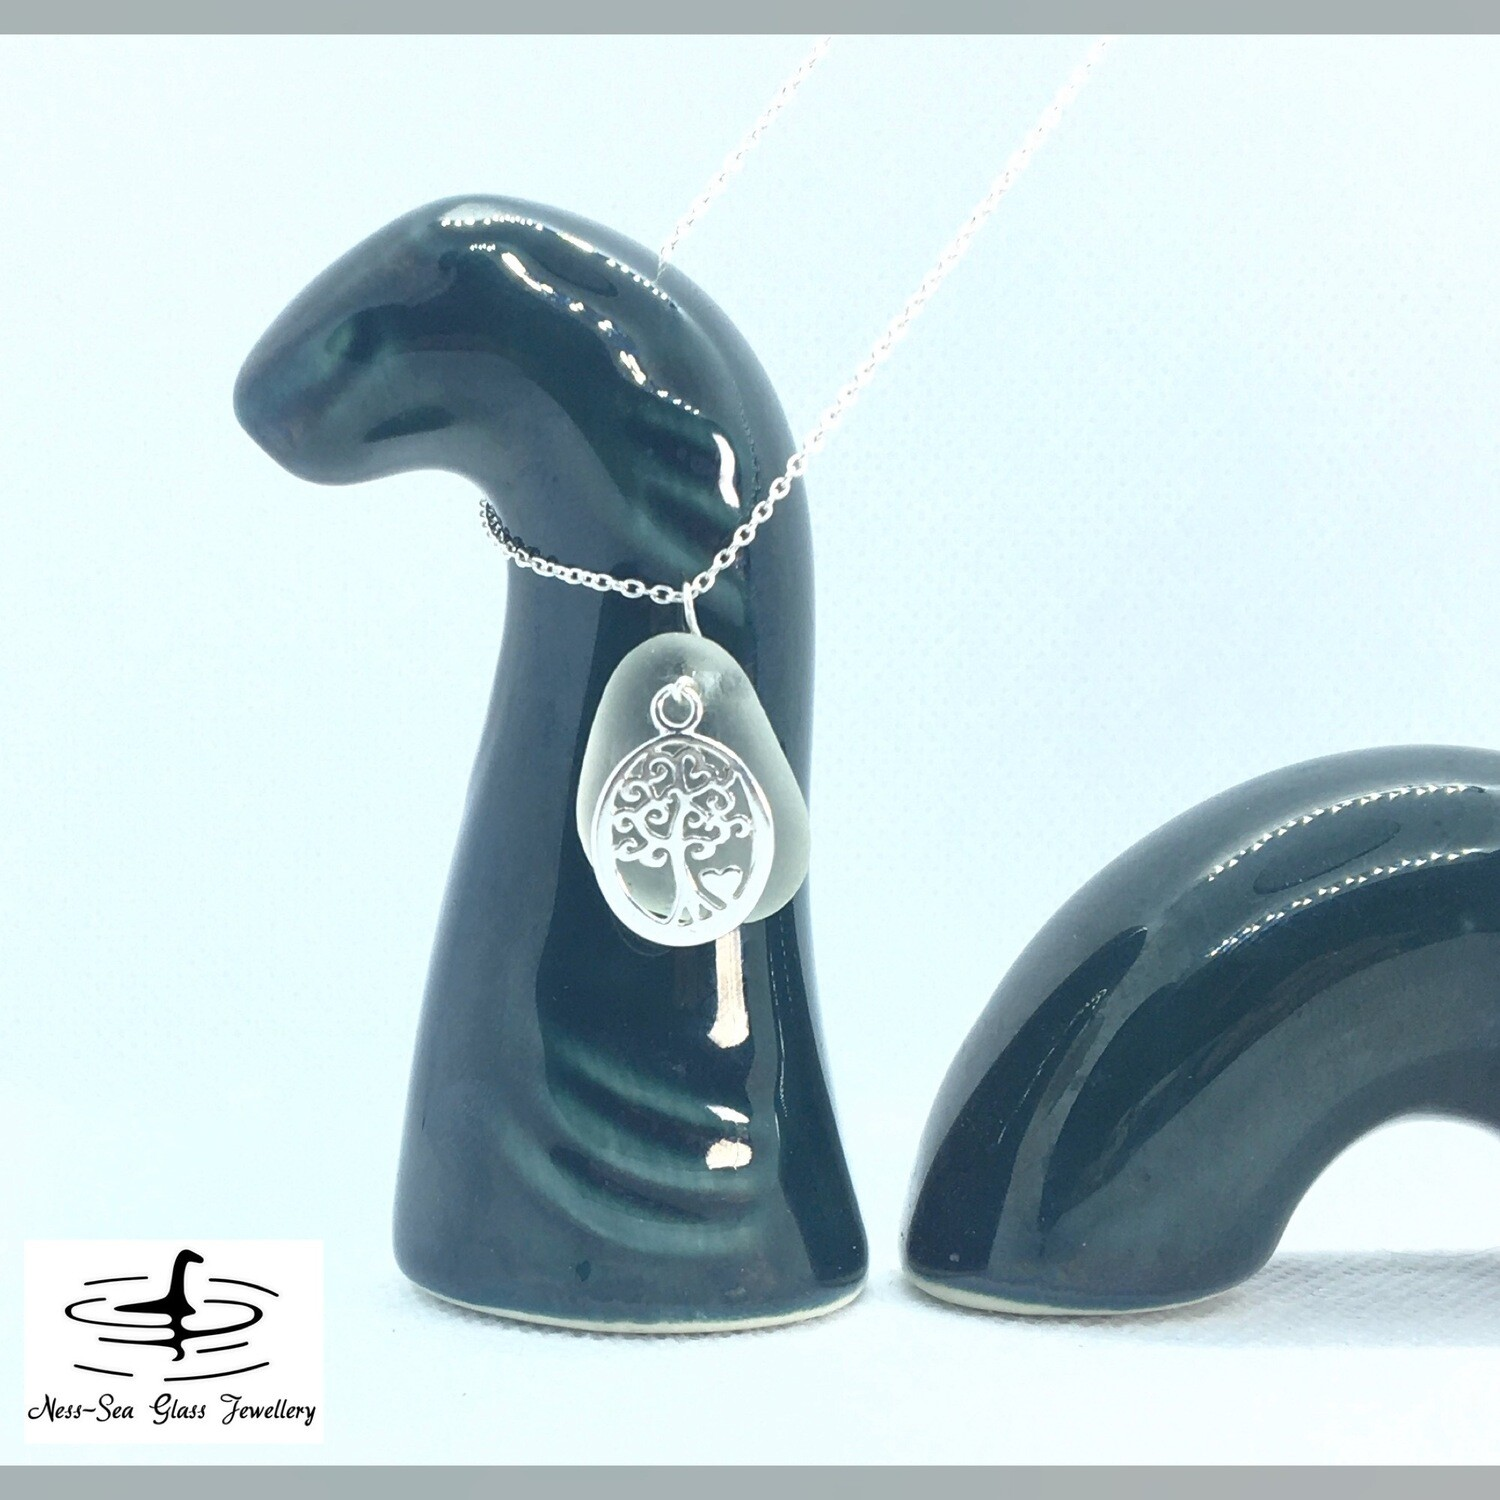 Clear Loch Ness Sea Glass Necklace with Sterling Silver Tree with Heart Detail and Fine Sterling Silver Chain